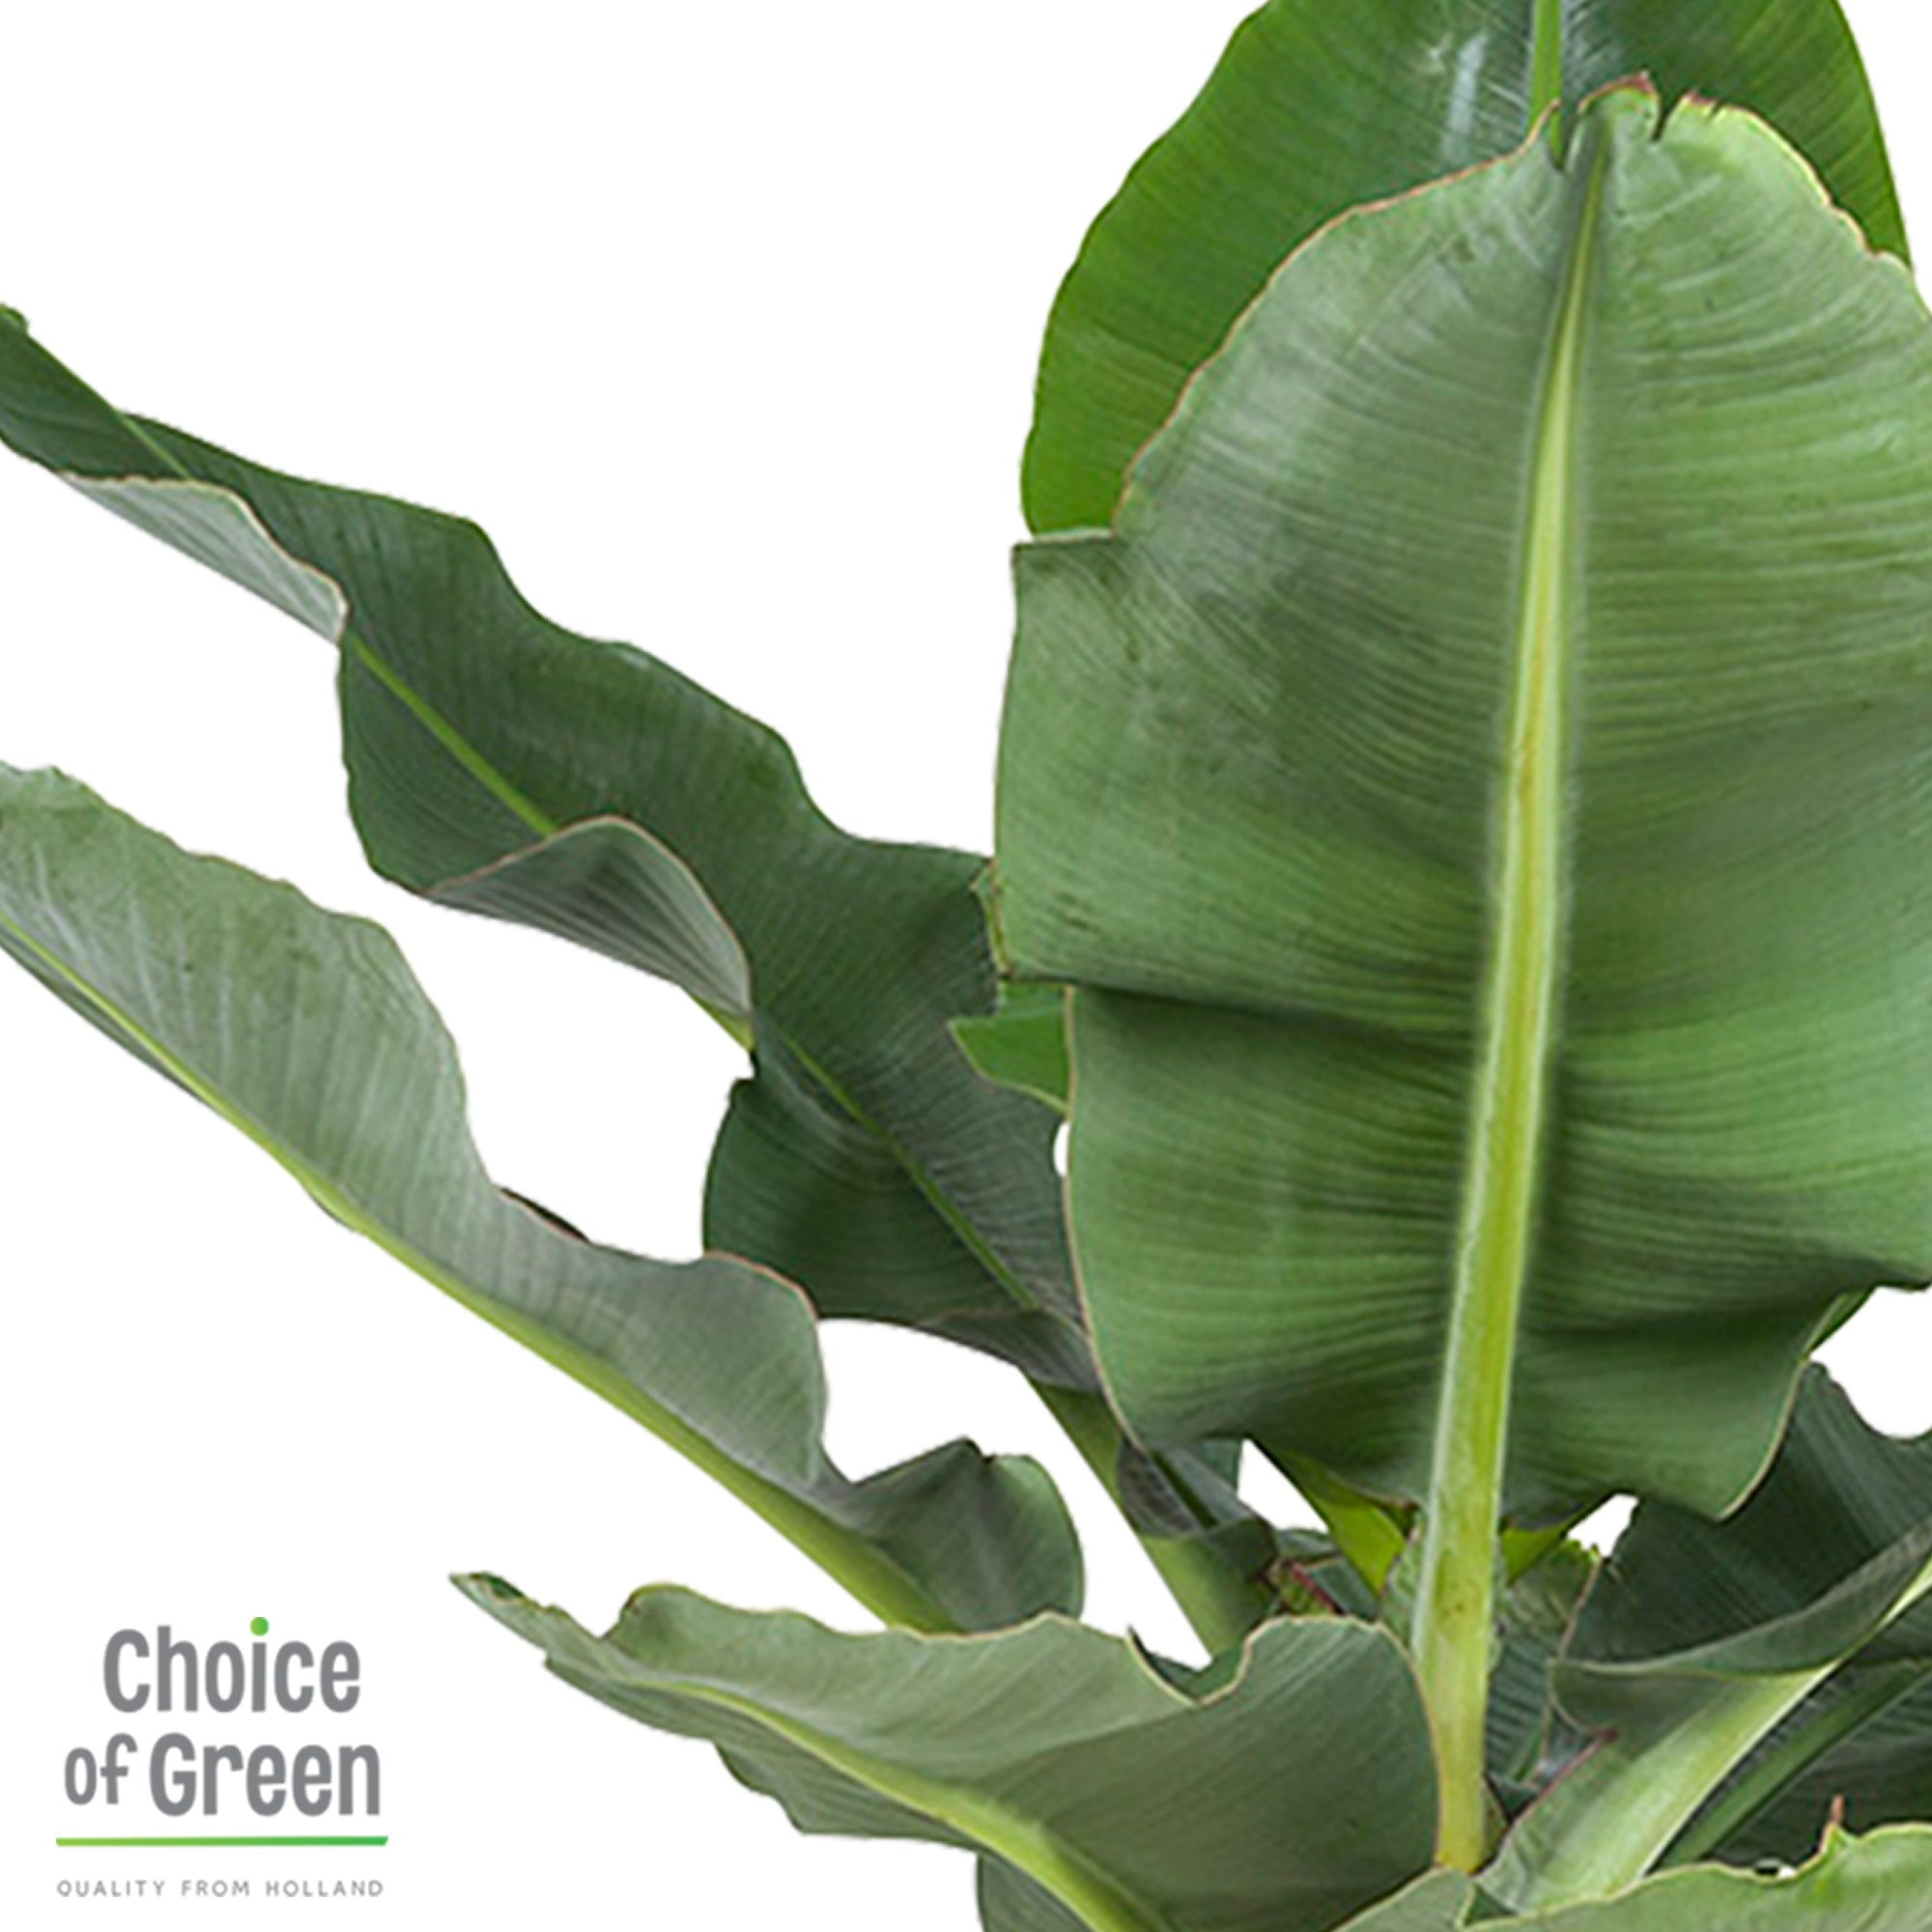 Choice of Green - Musa - Bananenplant - in Elho® Greenville pot bruin - Hoogte 80 cm - Diameter pot 30 cm